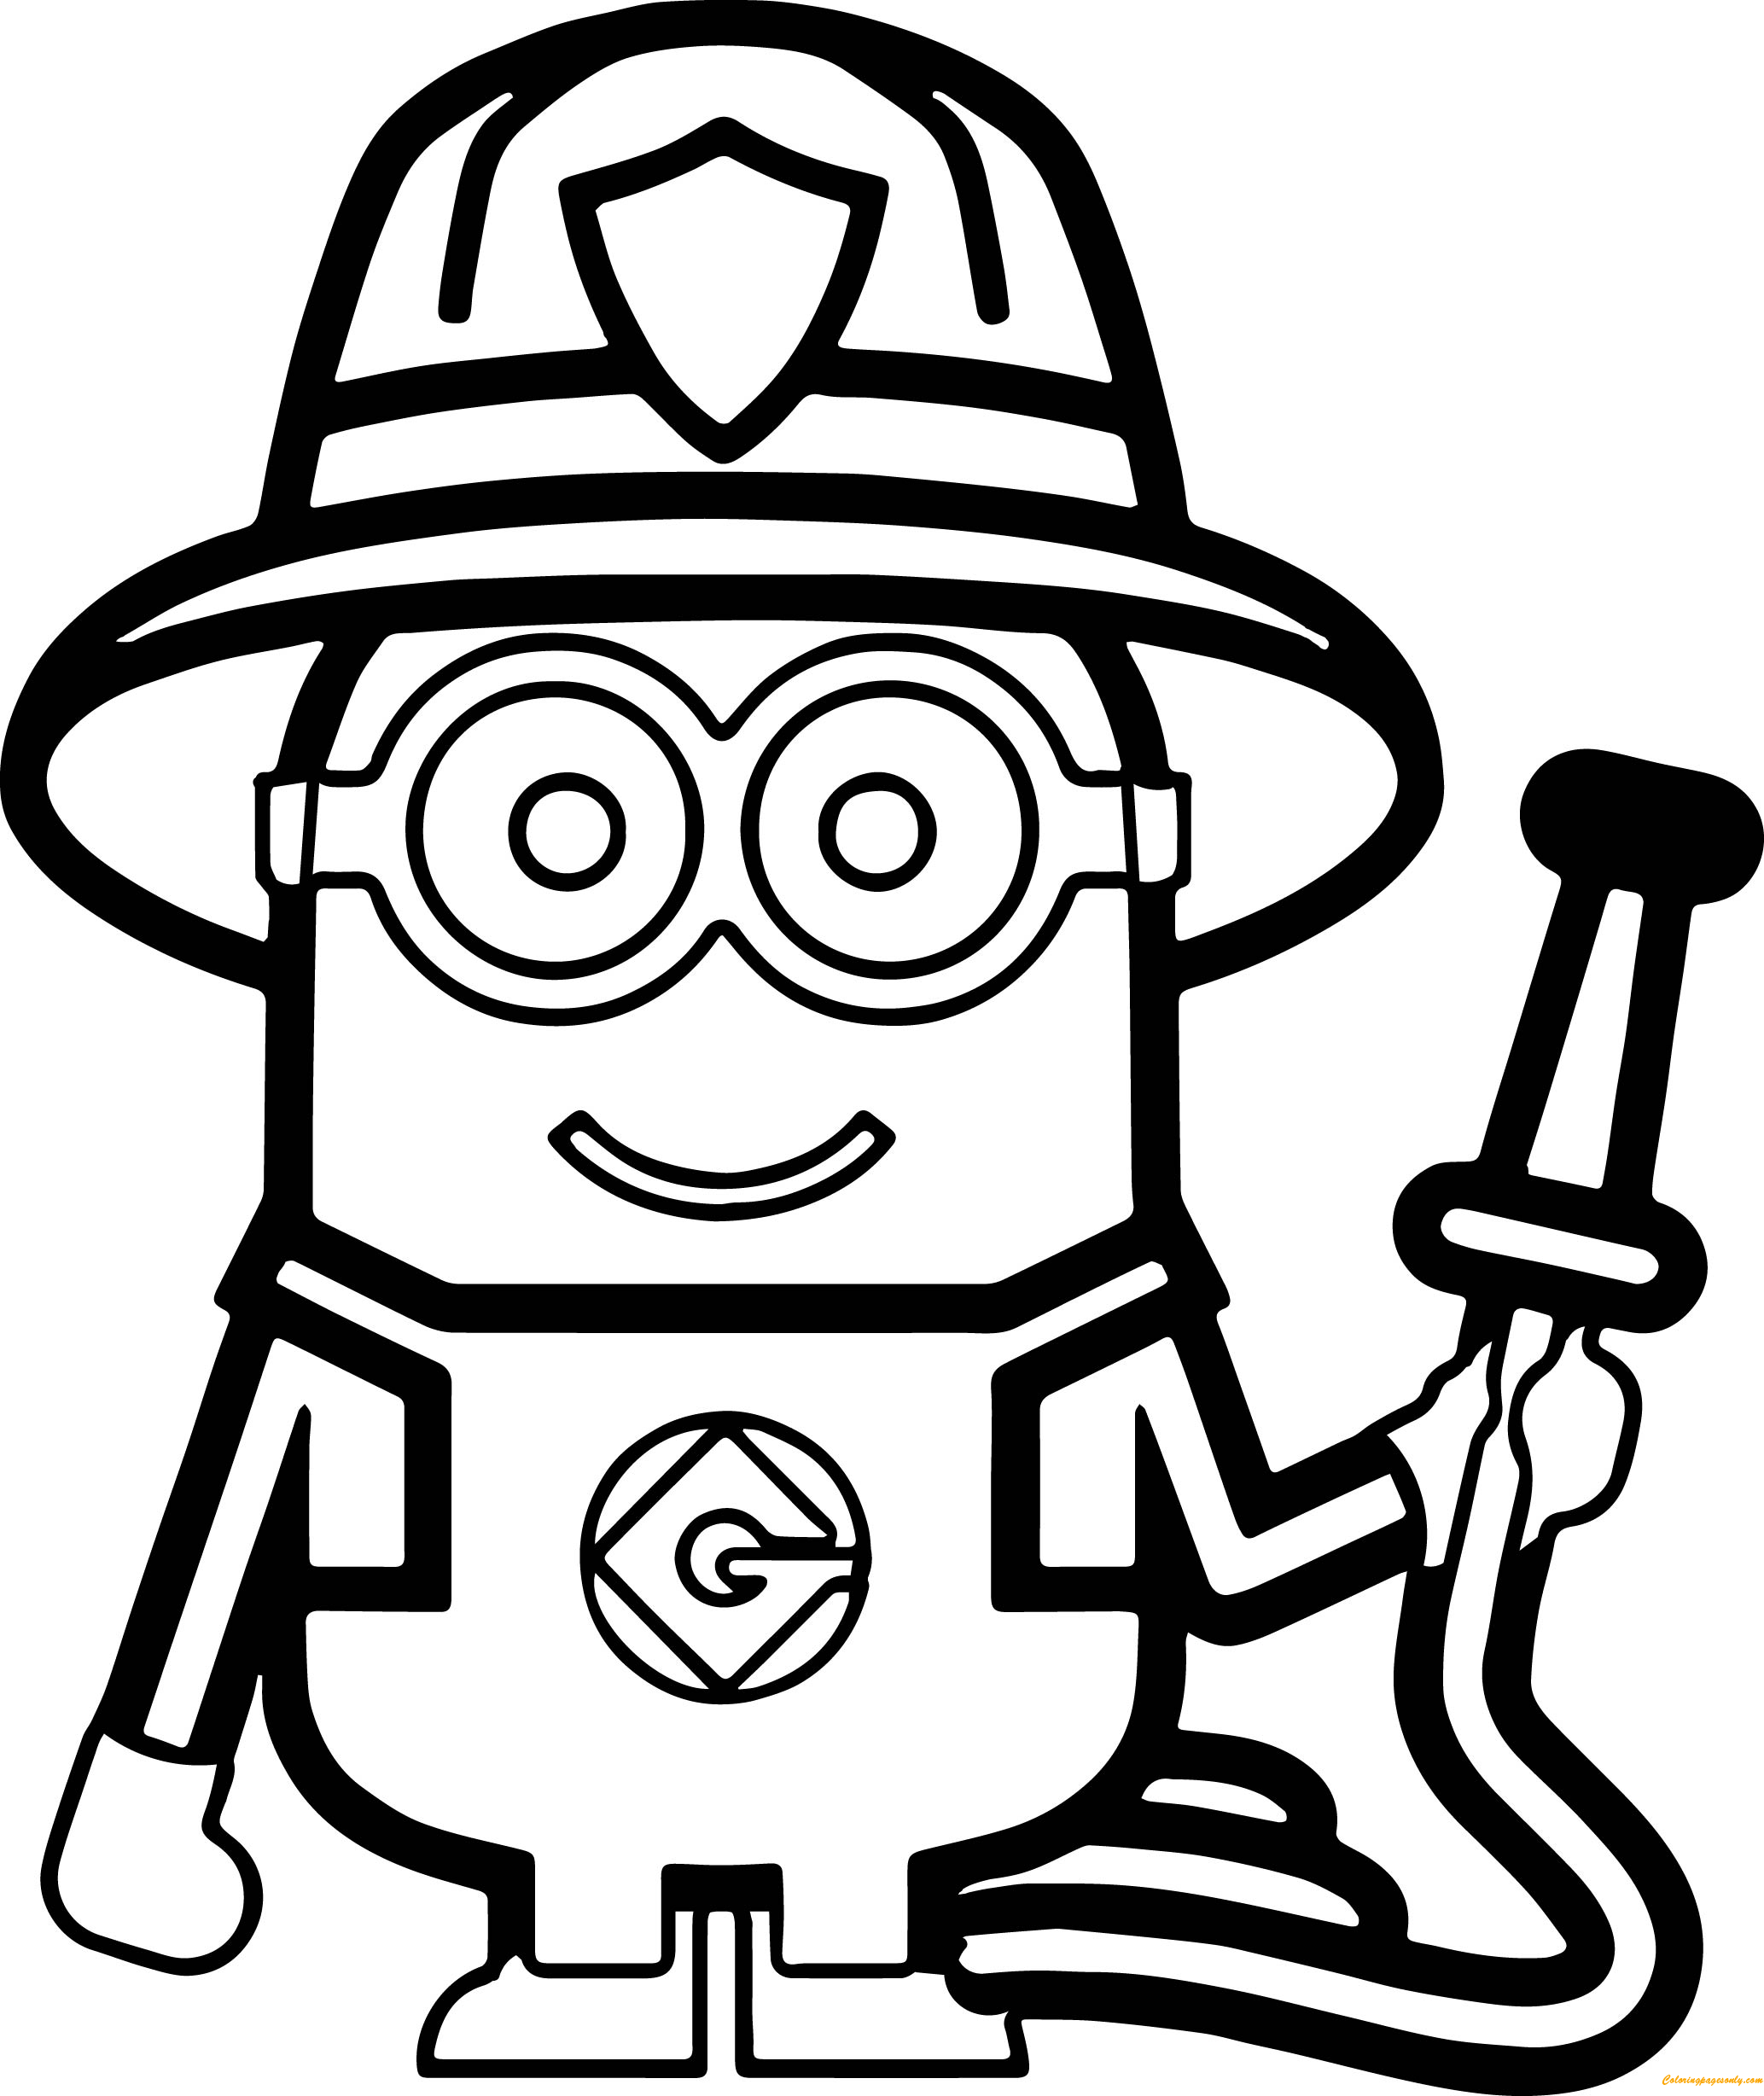 Download Minions Fireman Coloring Page - Free Coloring Pages Online